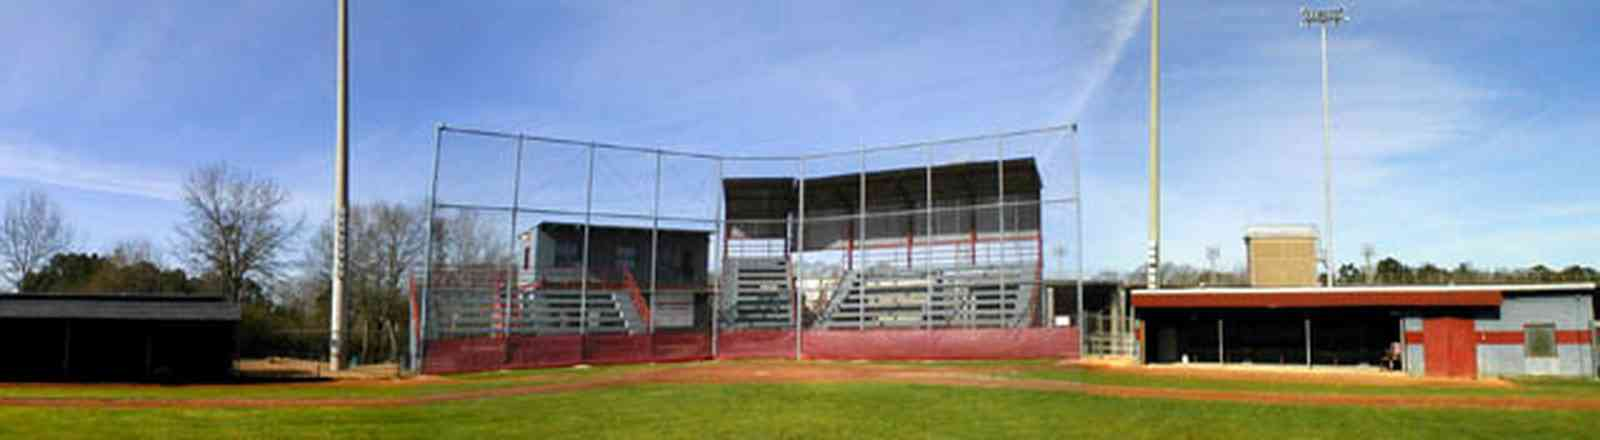 Pensacola:-Tate-High-School_00a.jpg:  grandstand, home plate, baseball field, dugouts, escambia county, home plate, concession stand, press box, gonzales